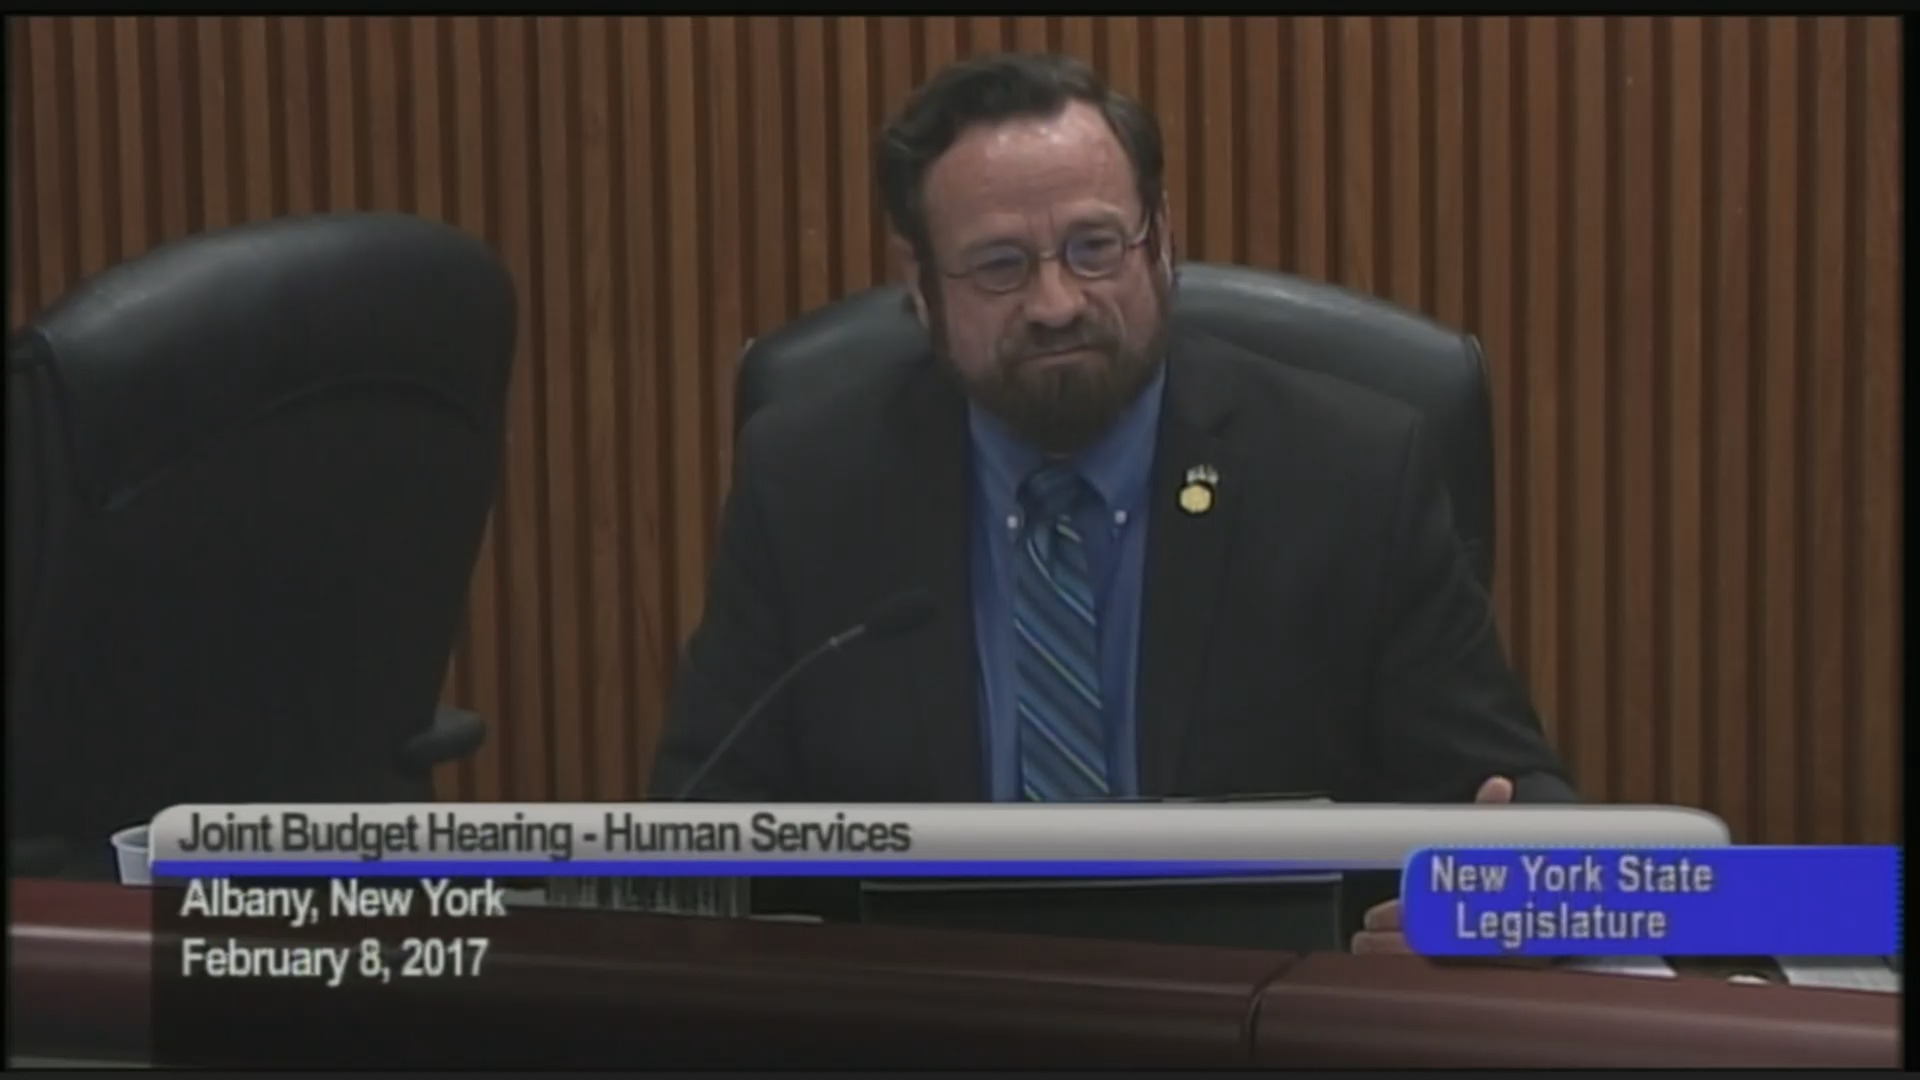 Assembly-Senate Budget Hearing on Funding for Social Services